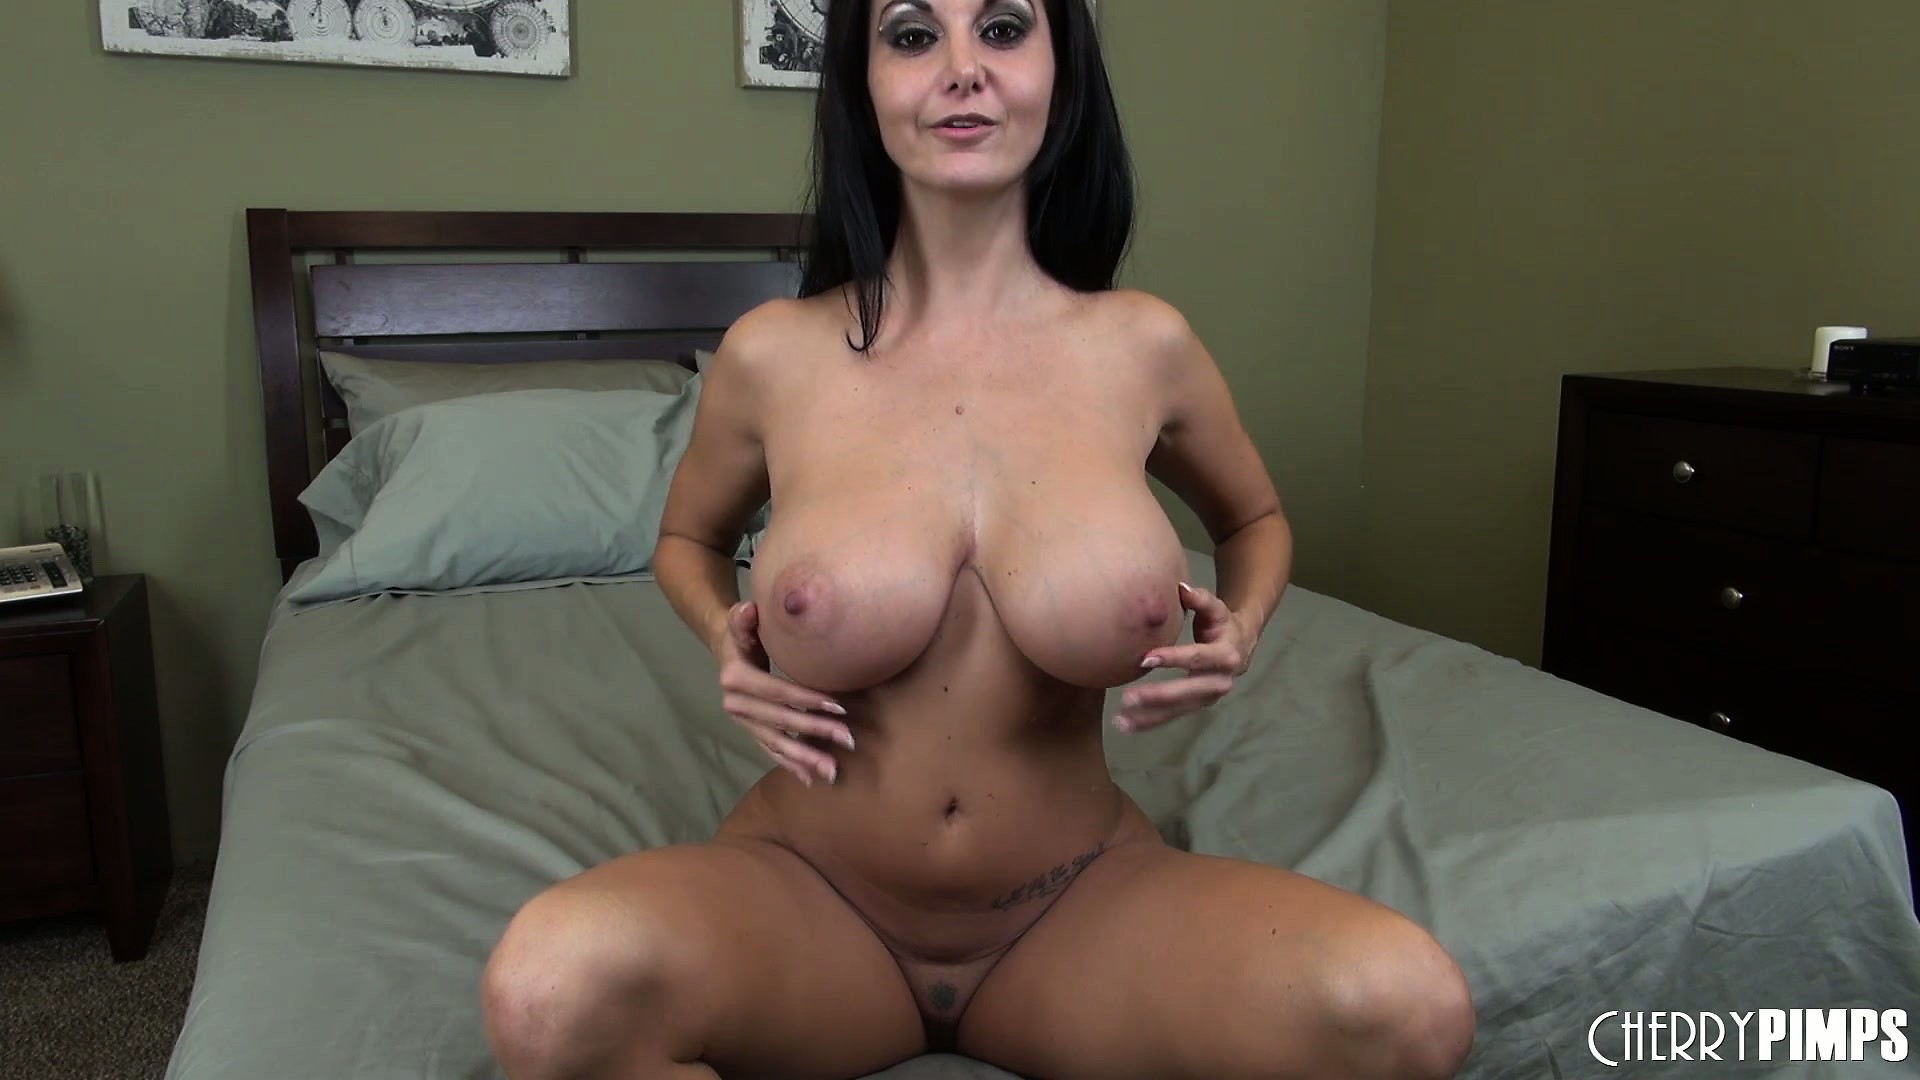 Porn Tube of Cute Slut Ava Addams Shakes Her Big, Fake Boobies And Masturbates